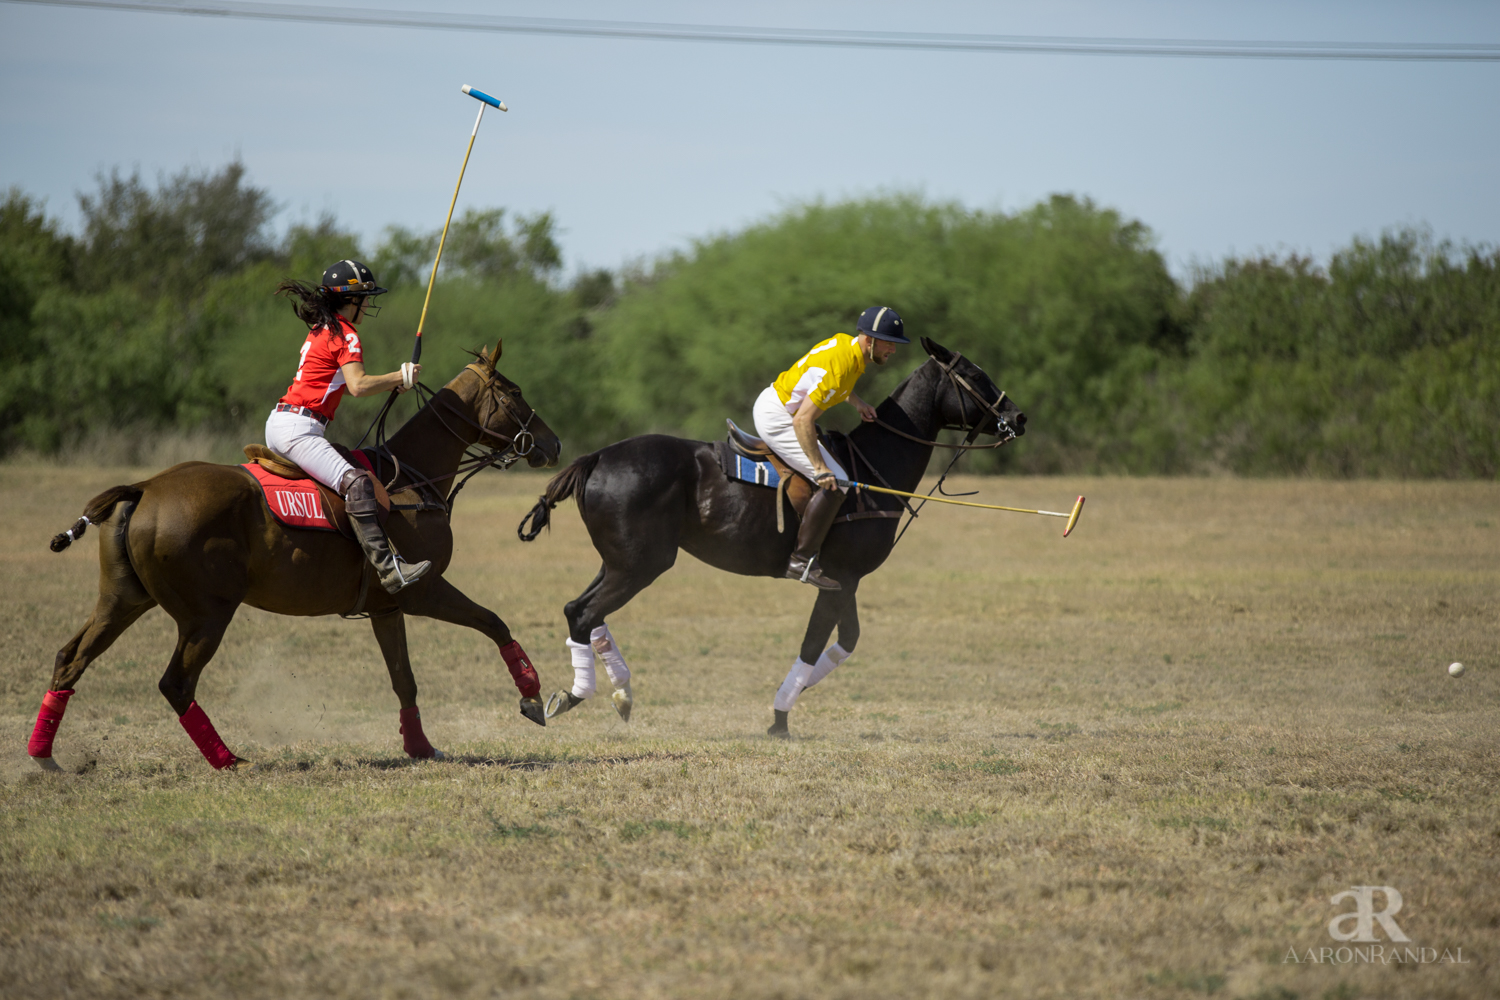 Horse Rental Match Play 1 Chukker 187 San Antonio Polo Club